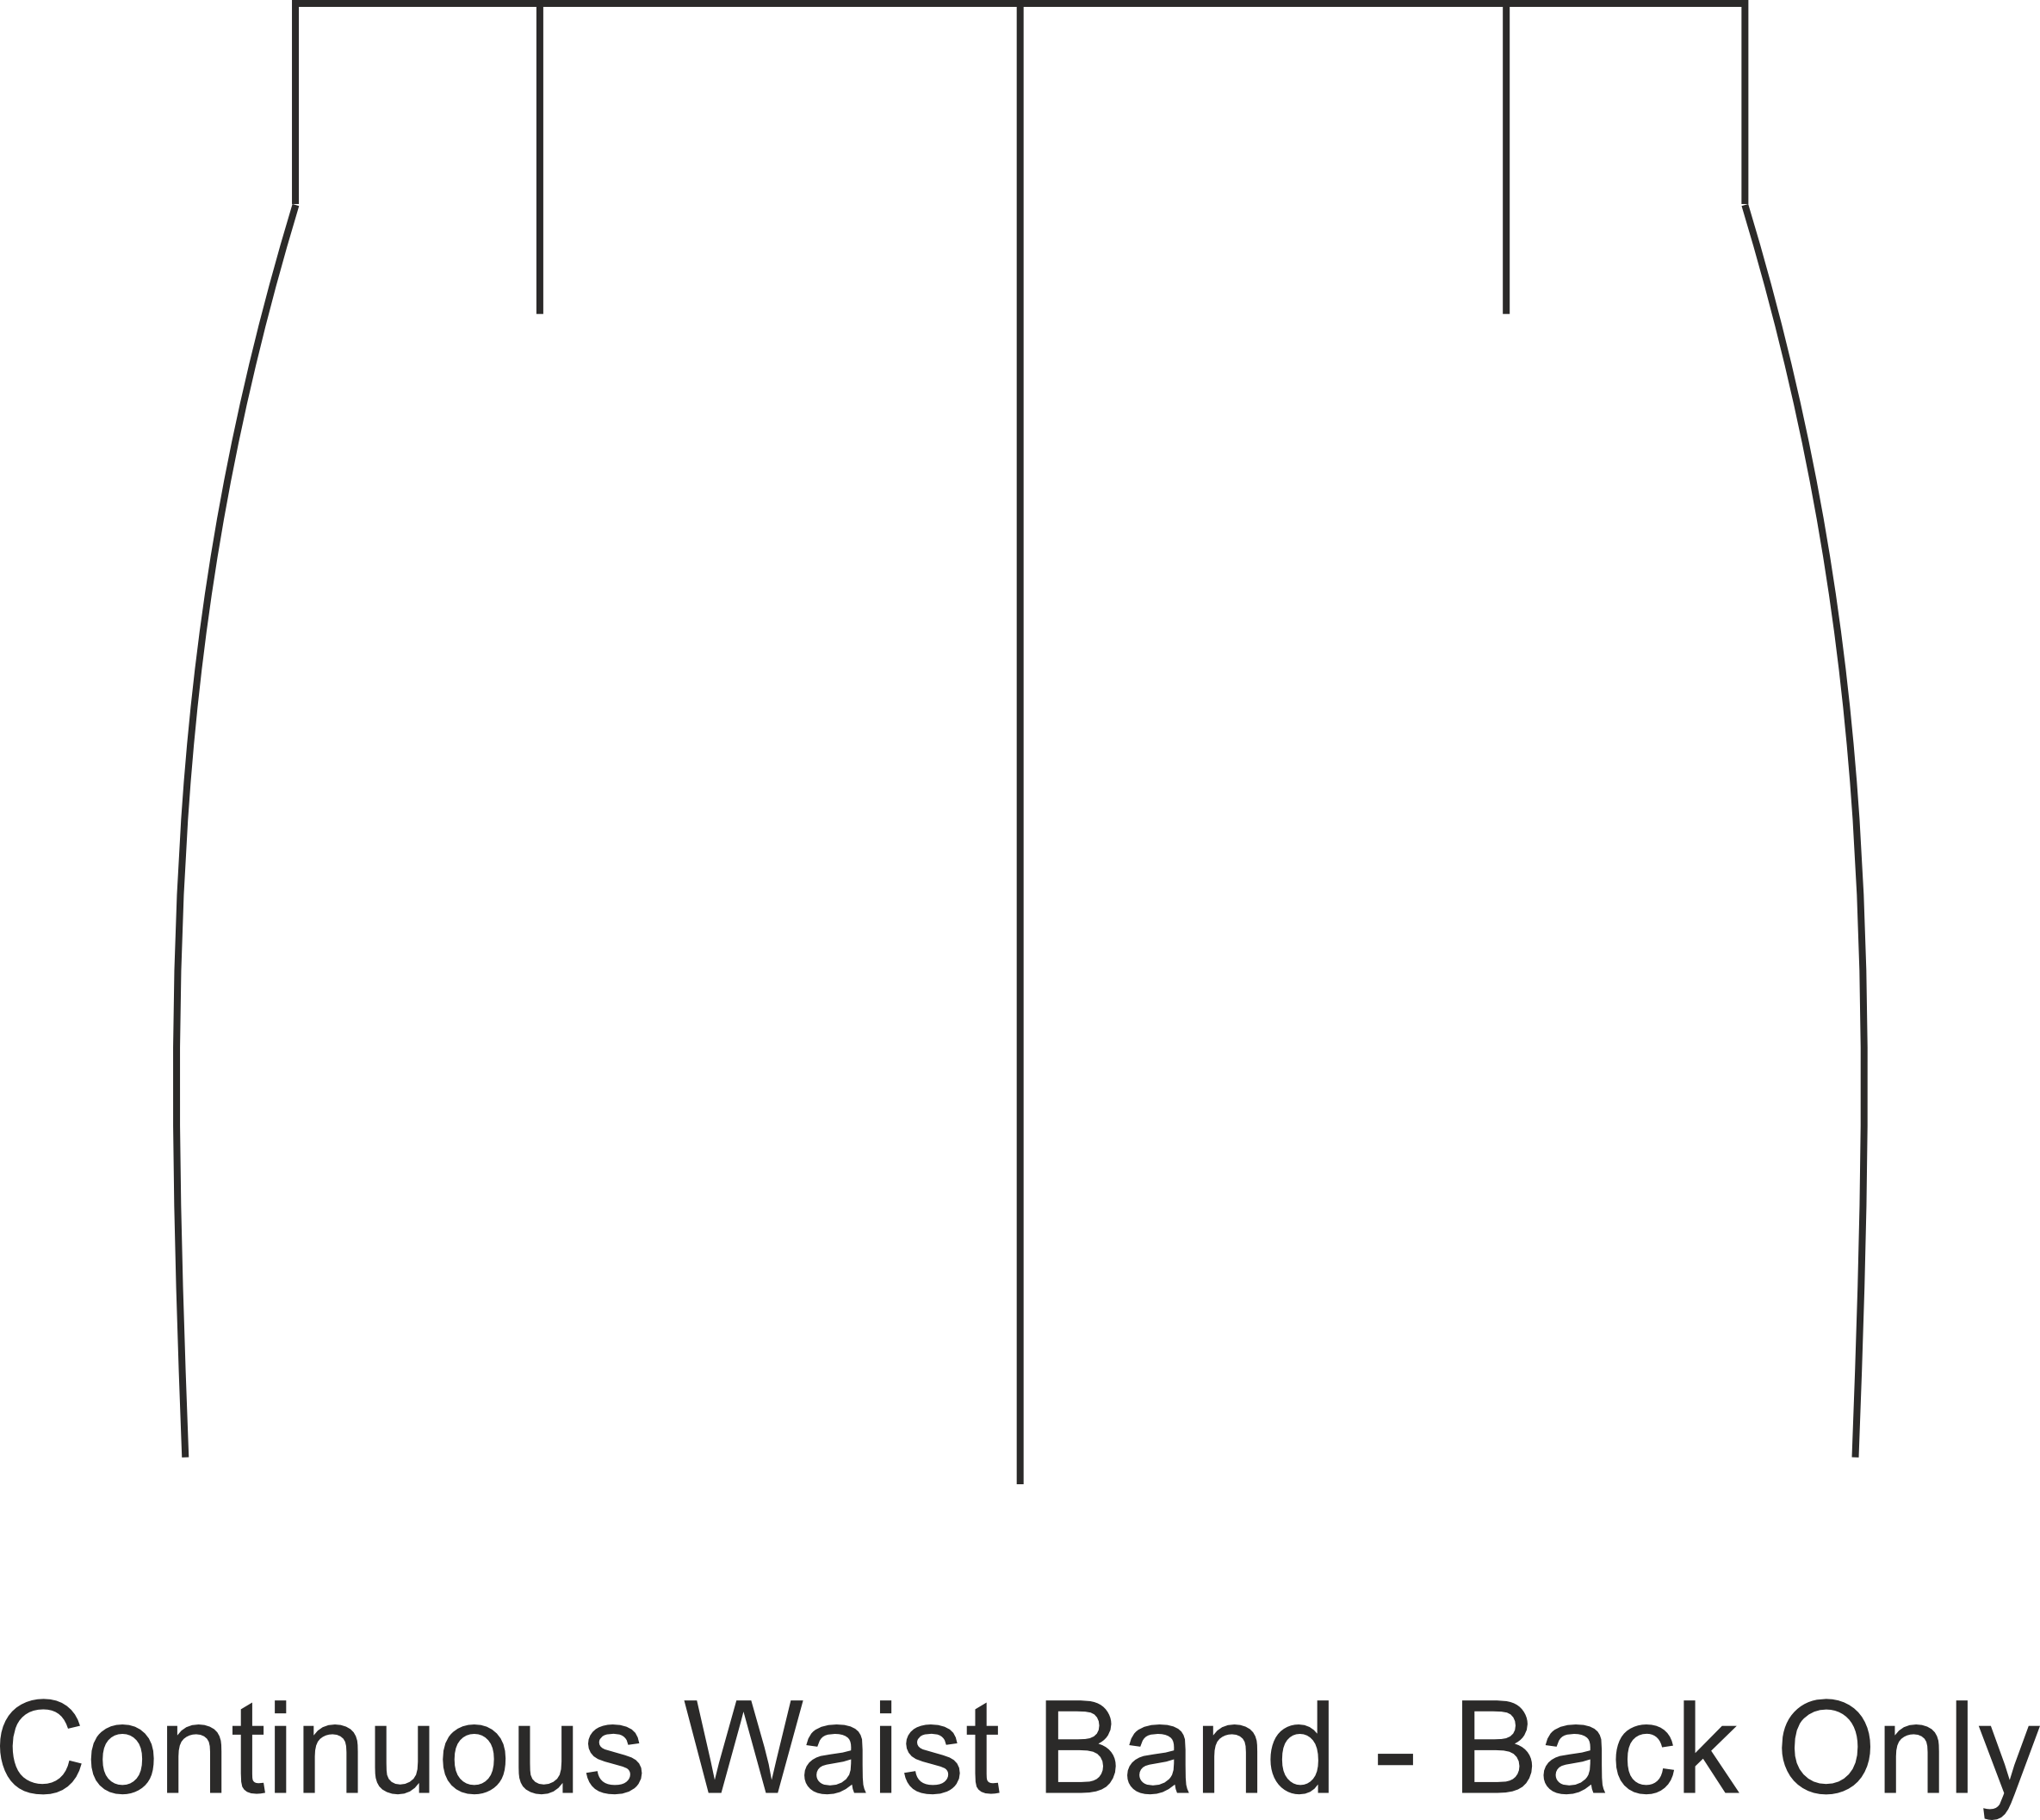 waistband-continuous-back